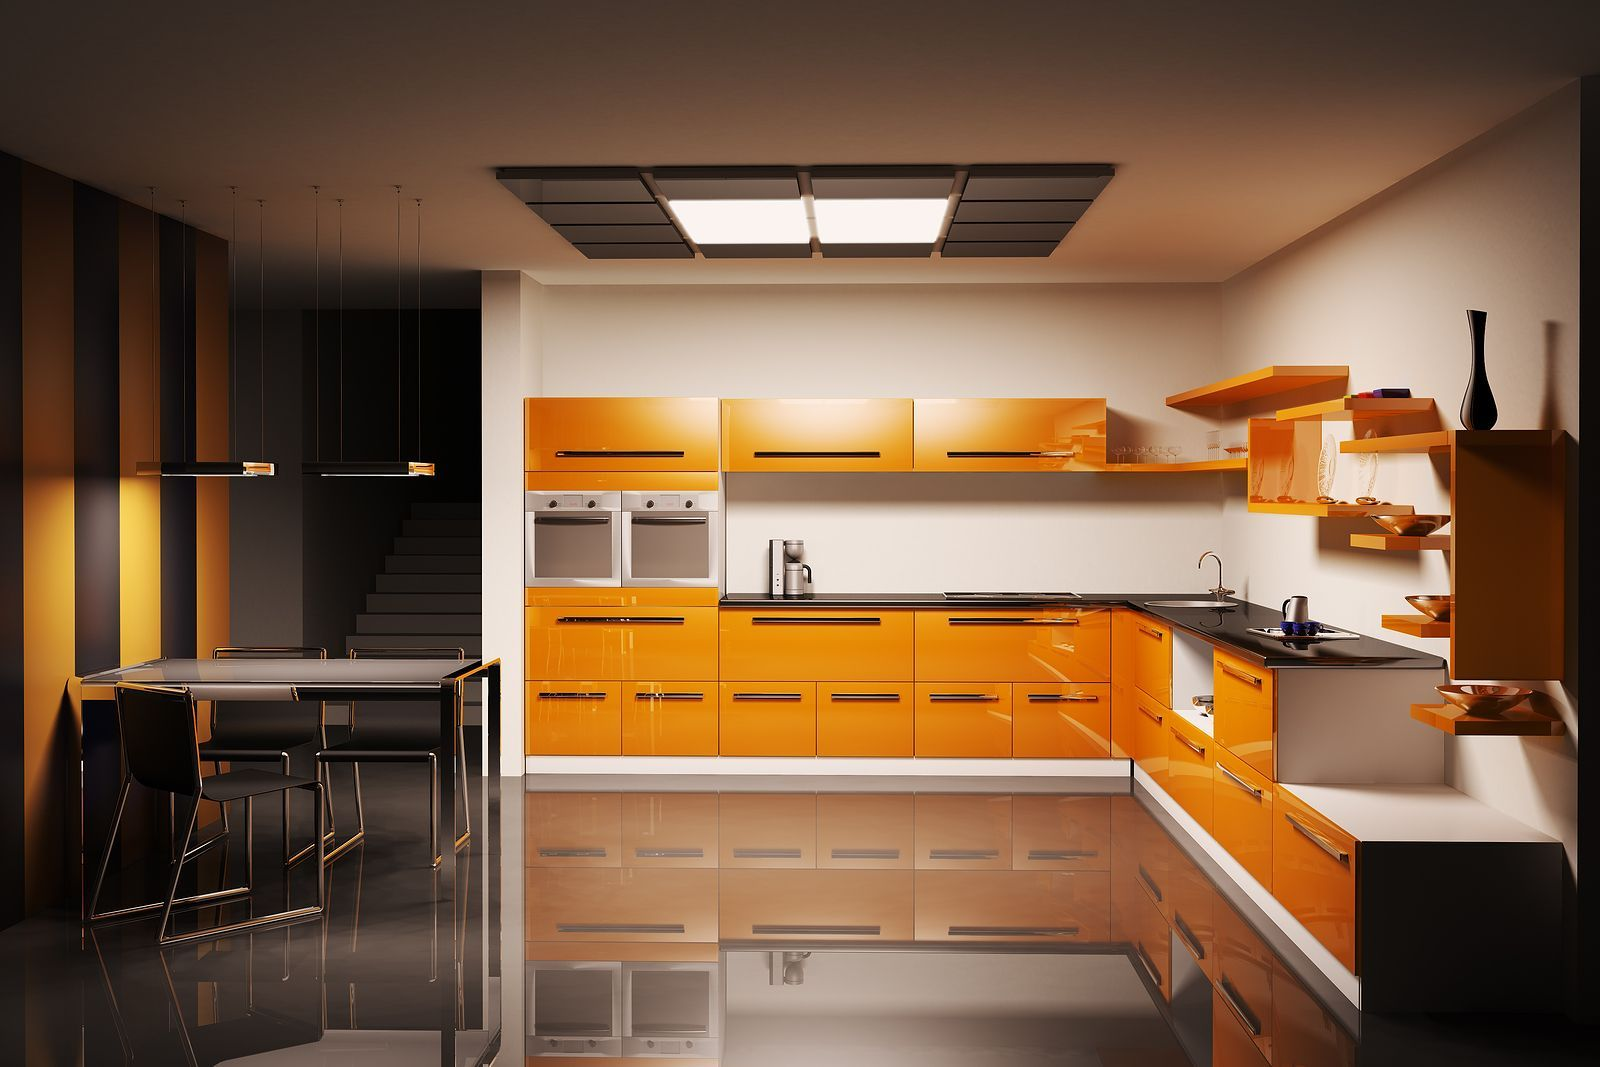 Stylish Orange Kitchen Designs For A Lighter Look  Stunning Extraordinary Kitchen Cabinet Designs And Colors Inspiration